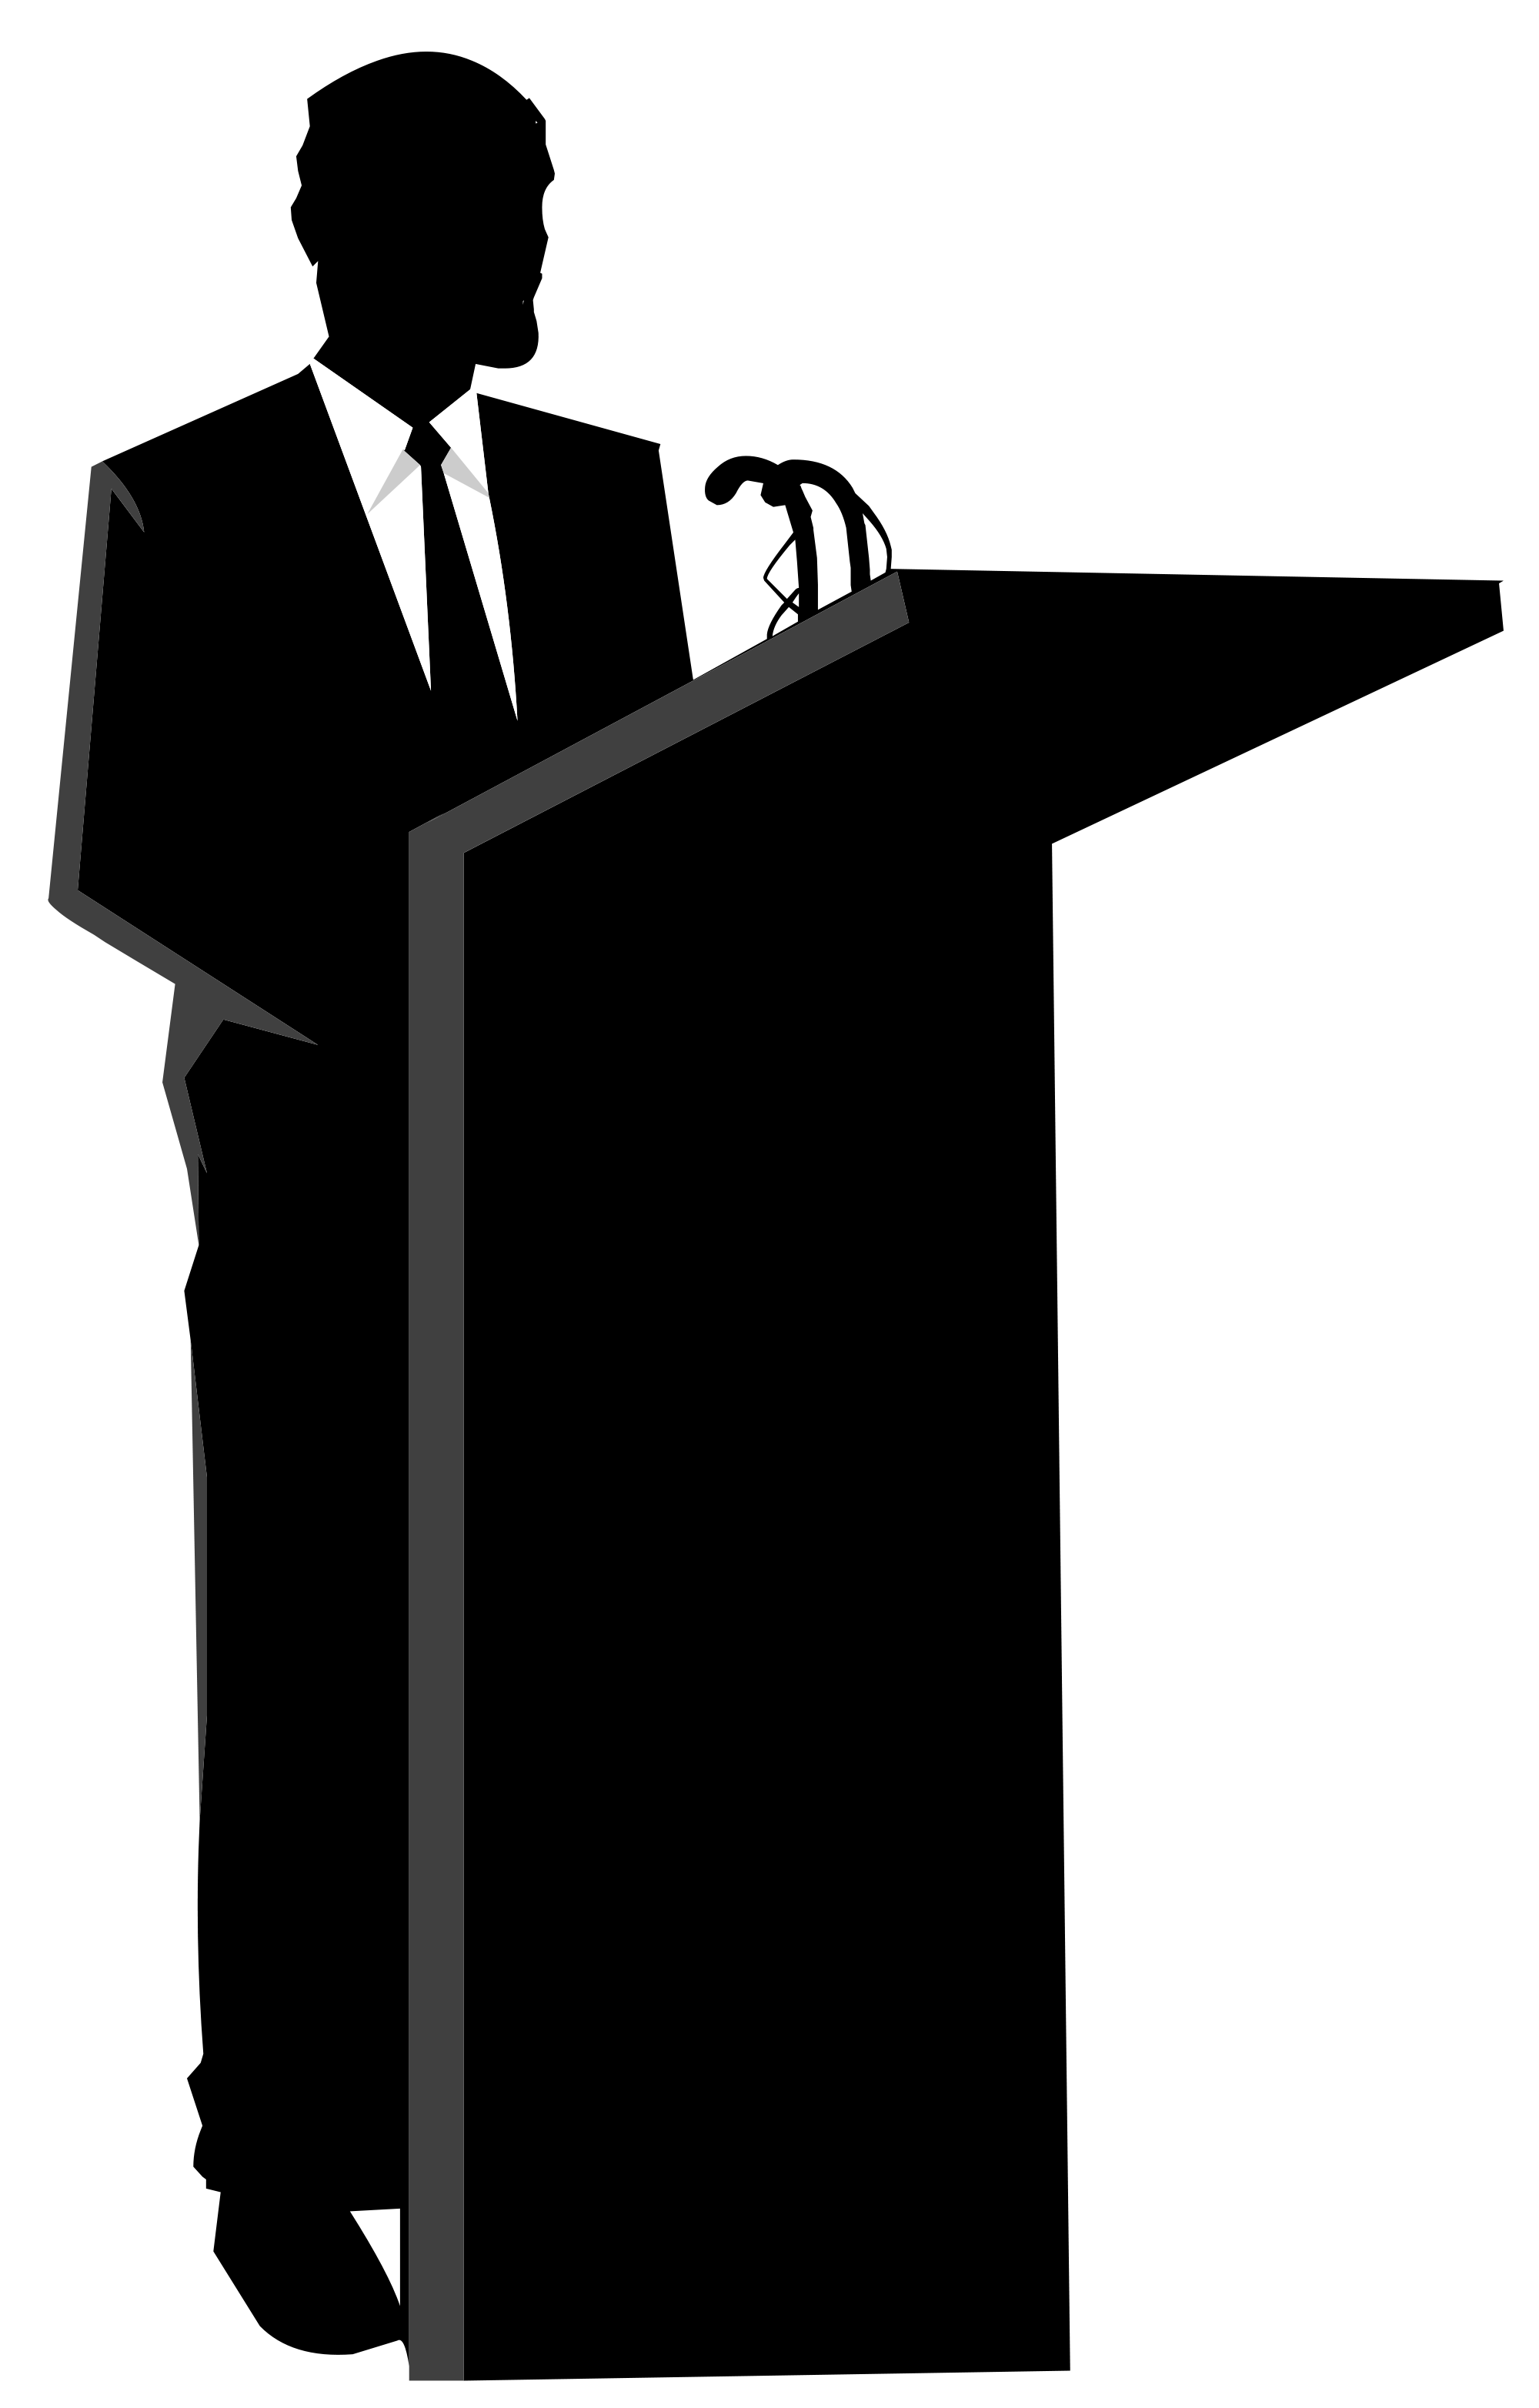 Politician clipart black and white. Silhouette at getdrawings com